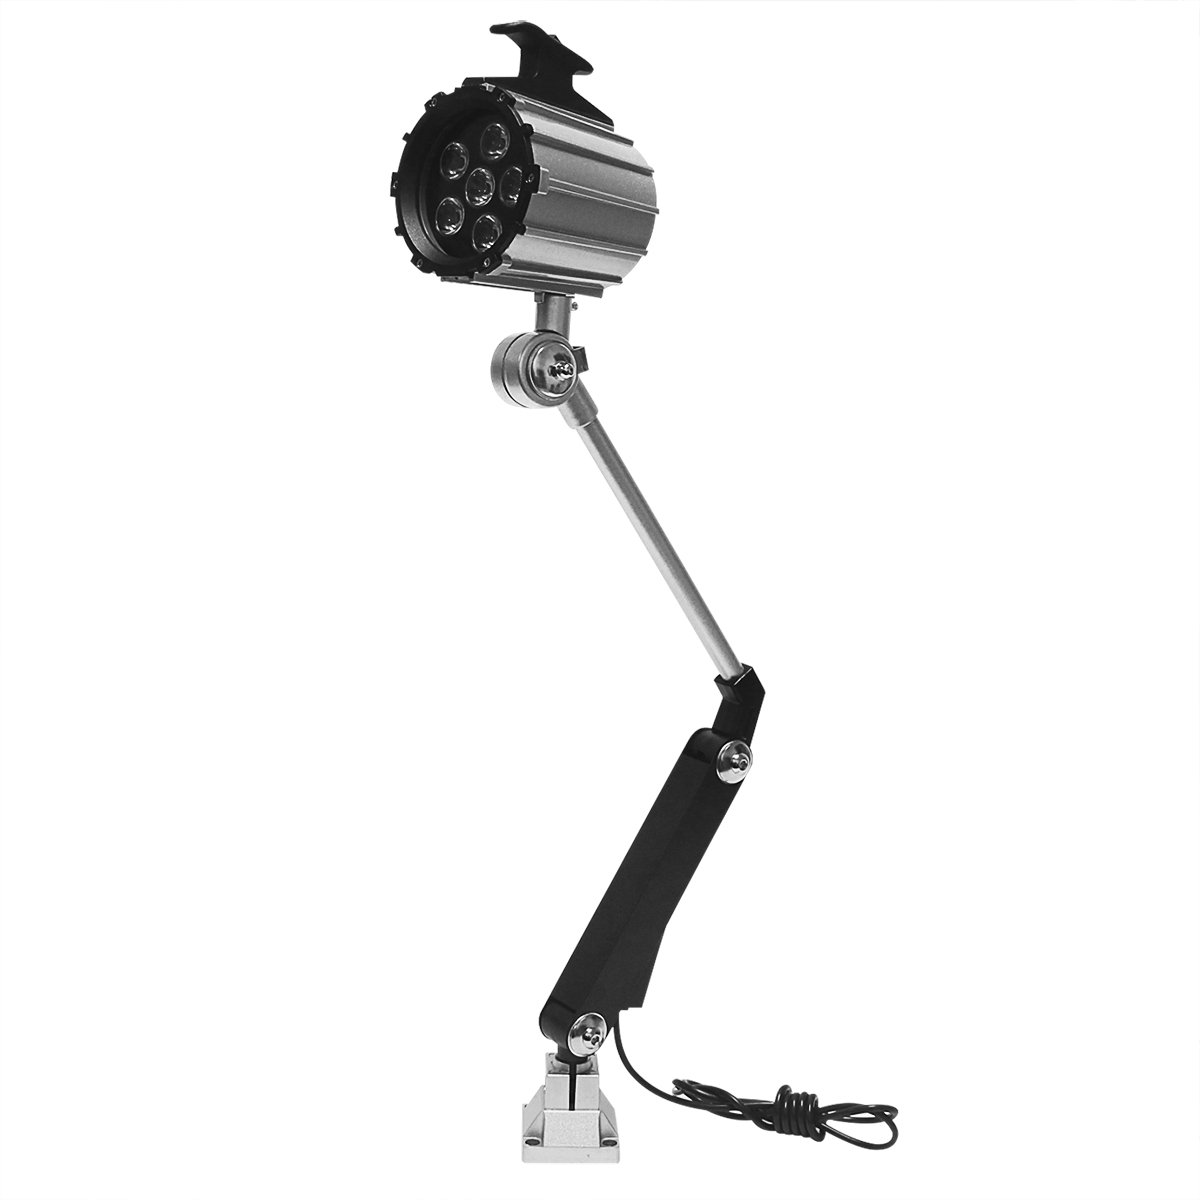 Wisamic 12W Long Arm LED Machine Work Lamp Worklight with 50,000 Hrs Service Life, Fully Adjustable Joints, 110v to 220v